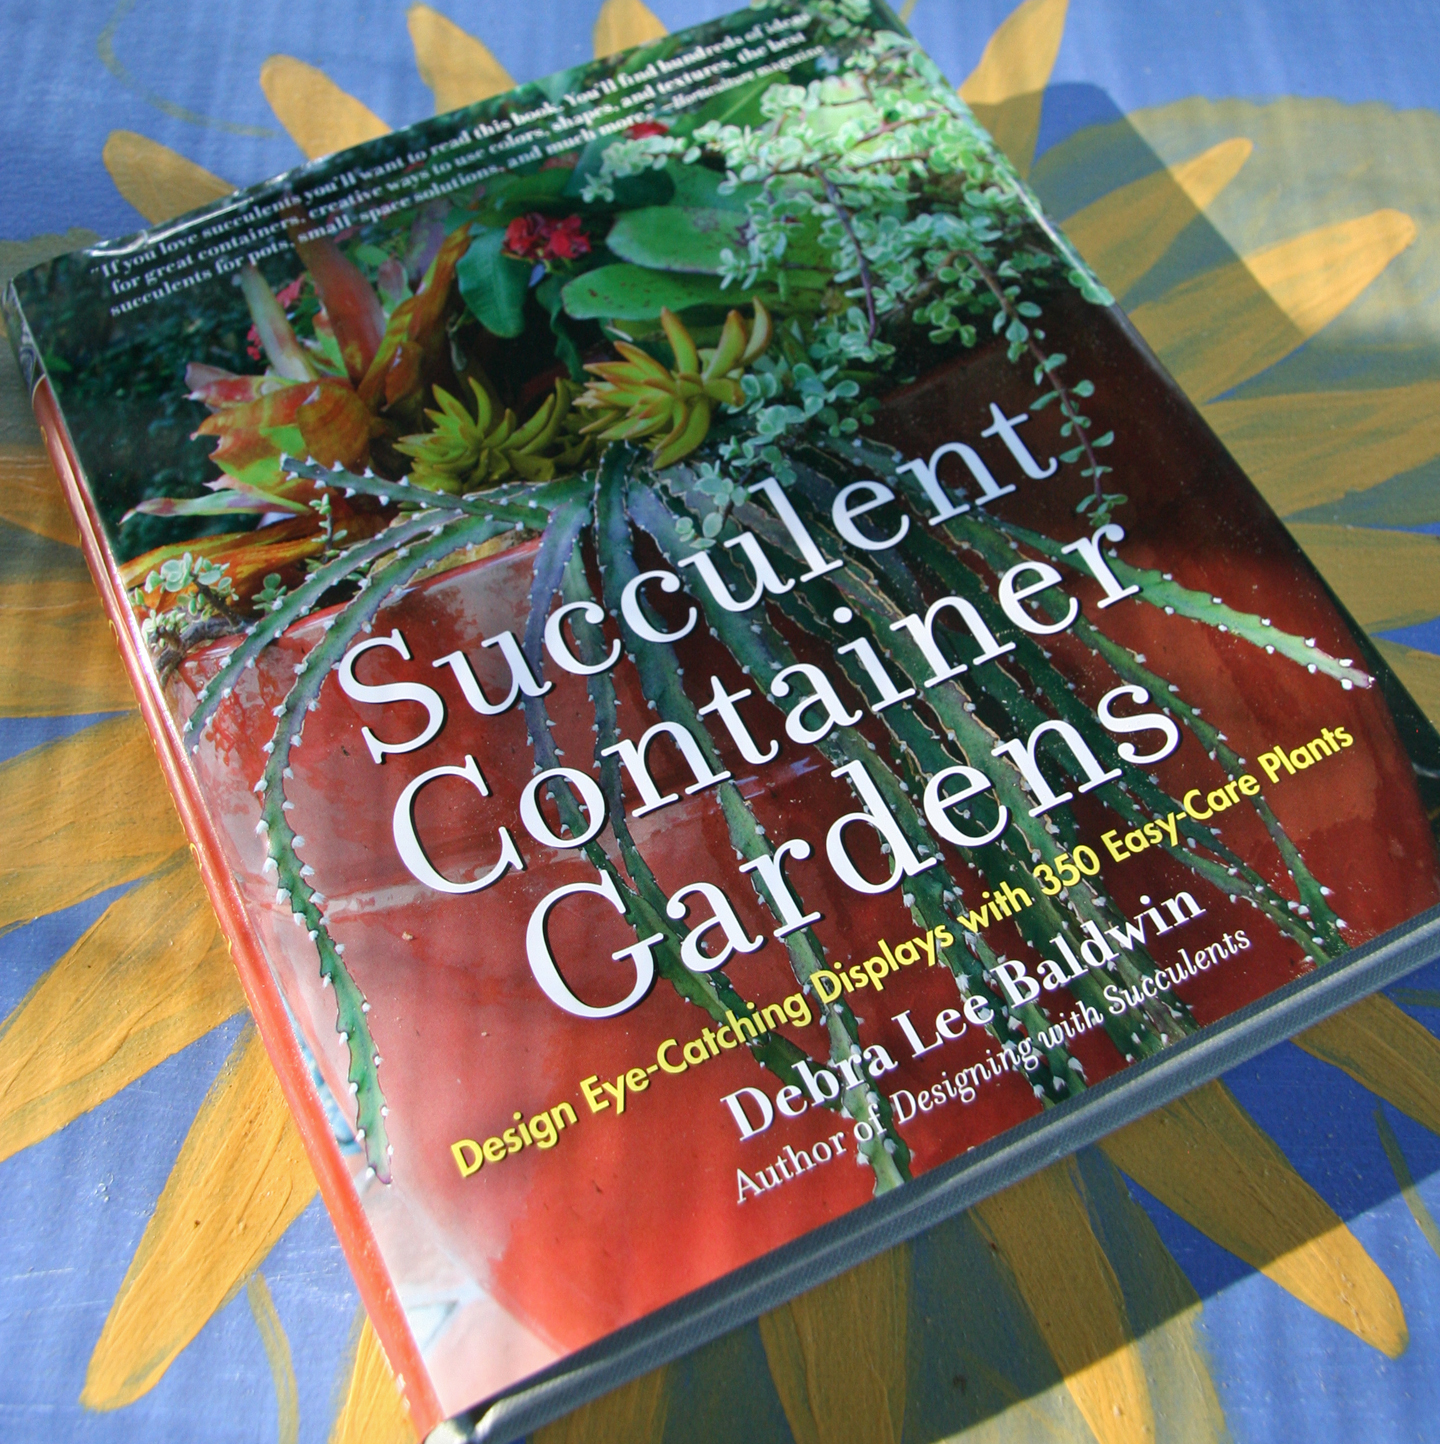 Daffodils daydreams book succulent container gardens by debra lee baldwin - Succulent container gardens debra lee baldwin ...